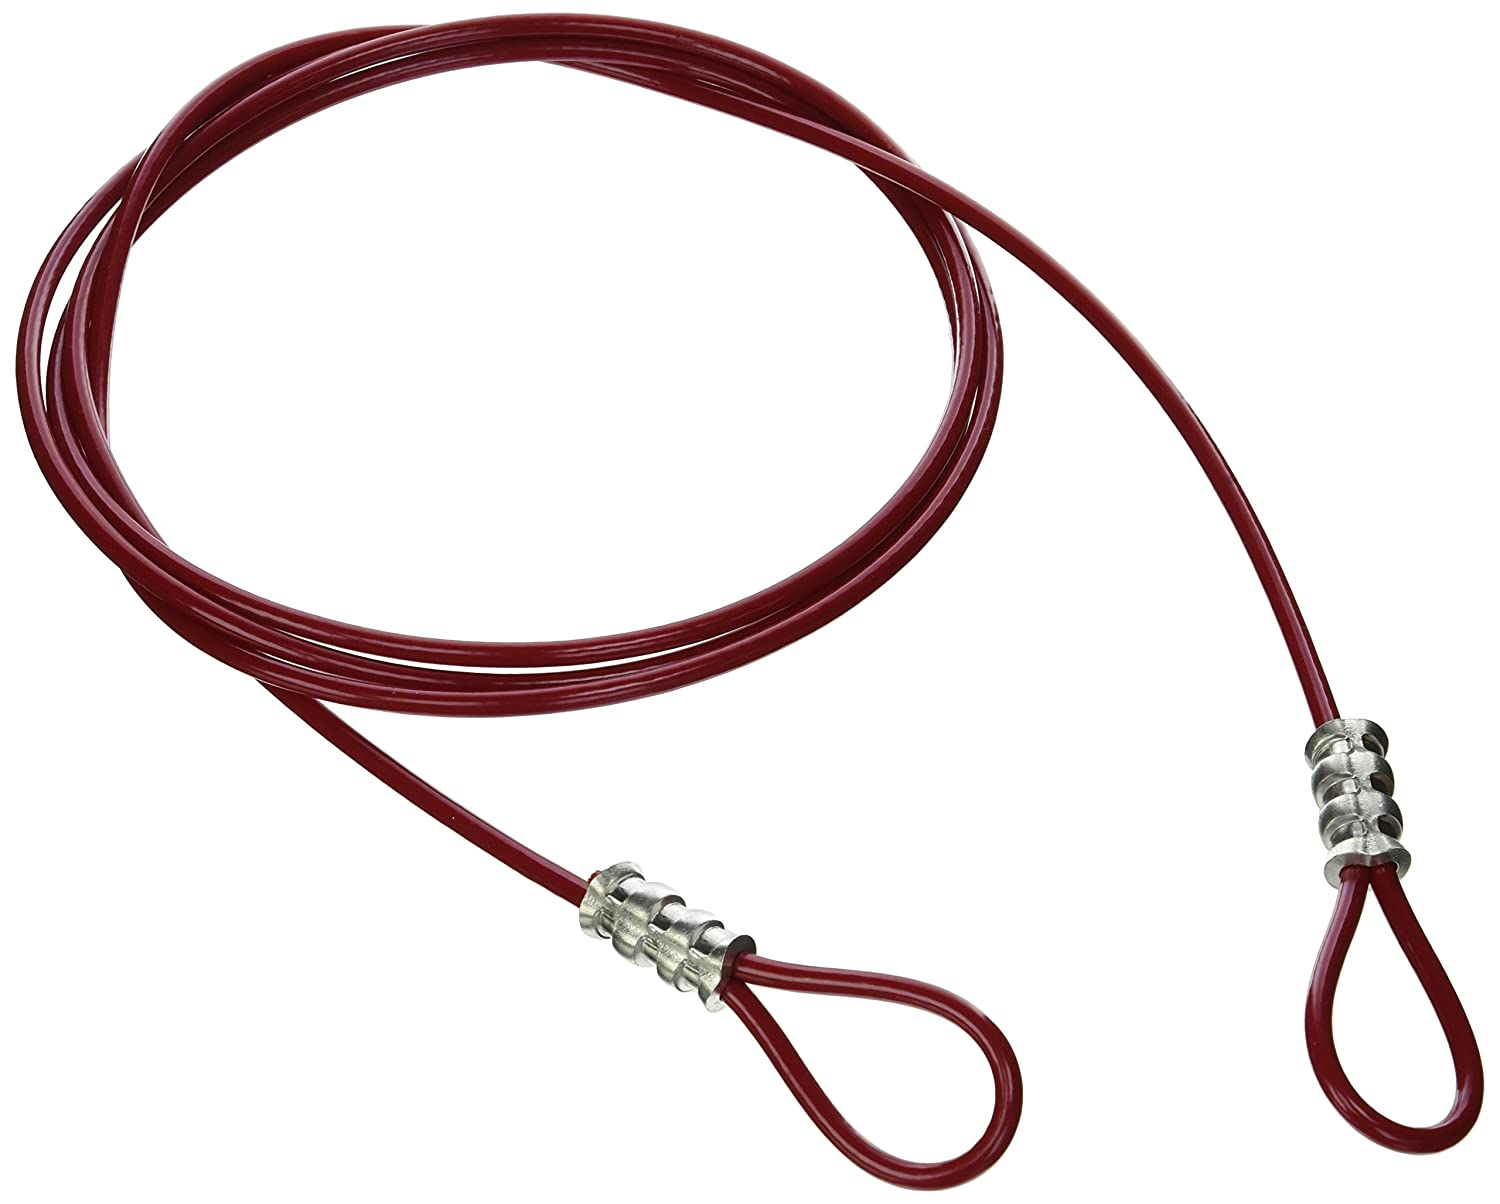 Brady 131066 Double Looped Lockout Cable, Plastic Coated Steel, 8' Cable, Red